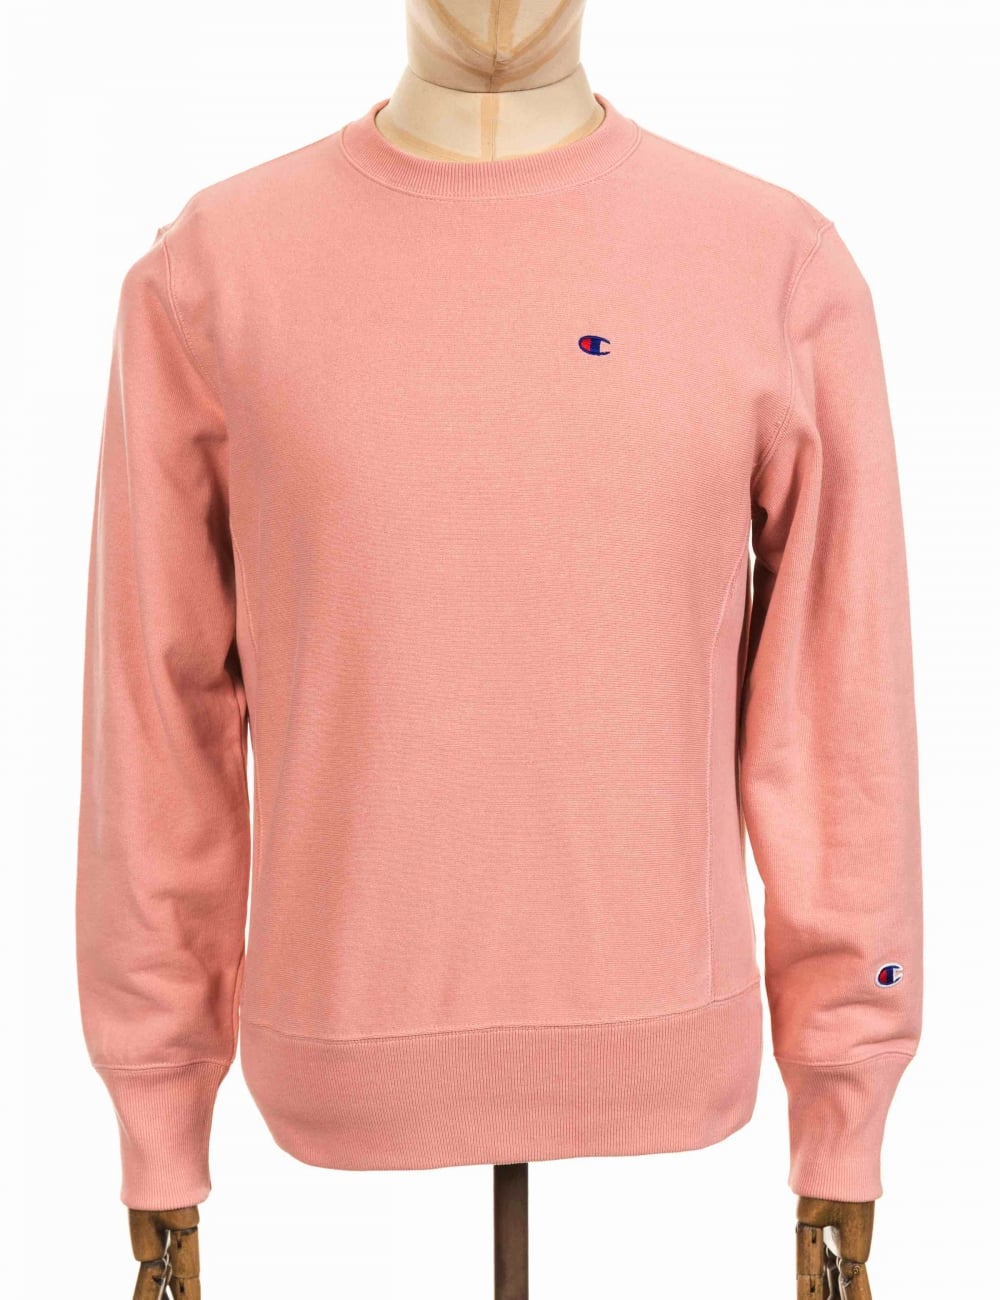 newest style shop for authentic sneakers for cheap Crewneck Sweatshirt - RTN Pink